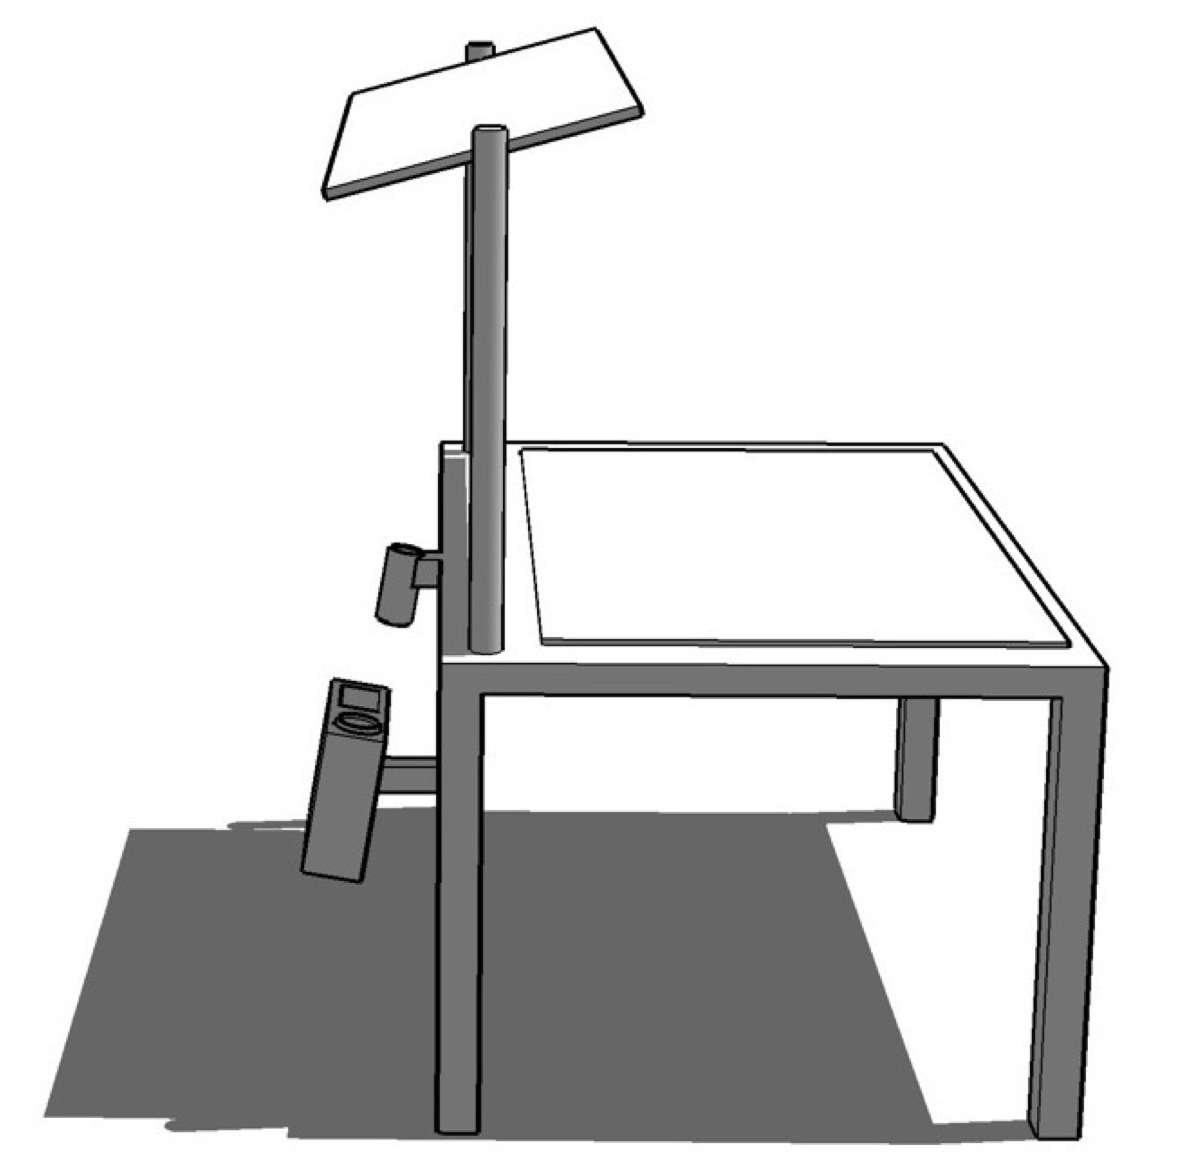 Diagram of the interactive table prototype.